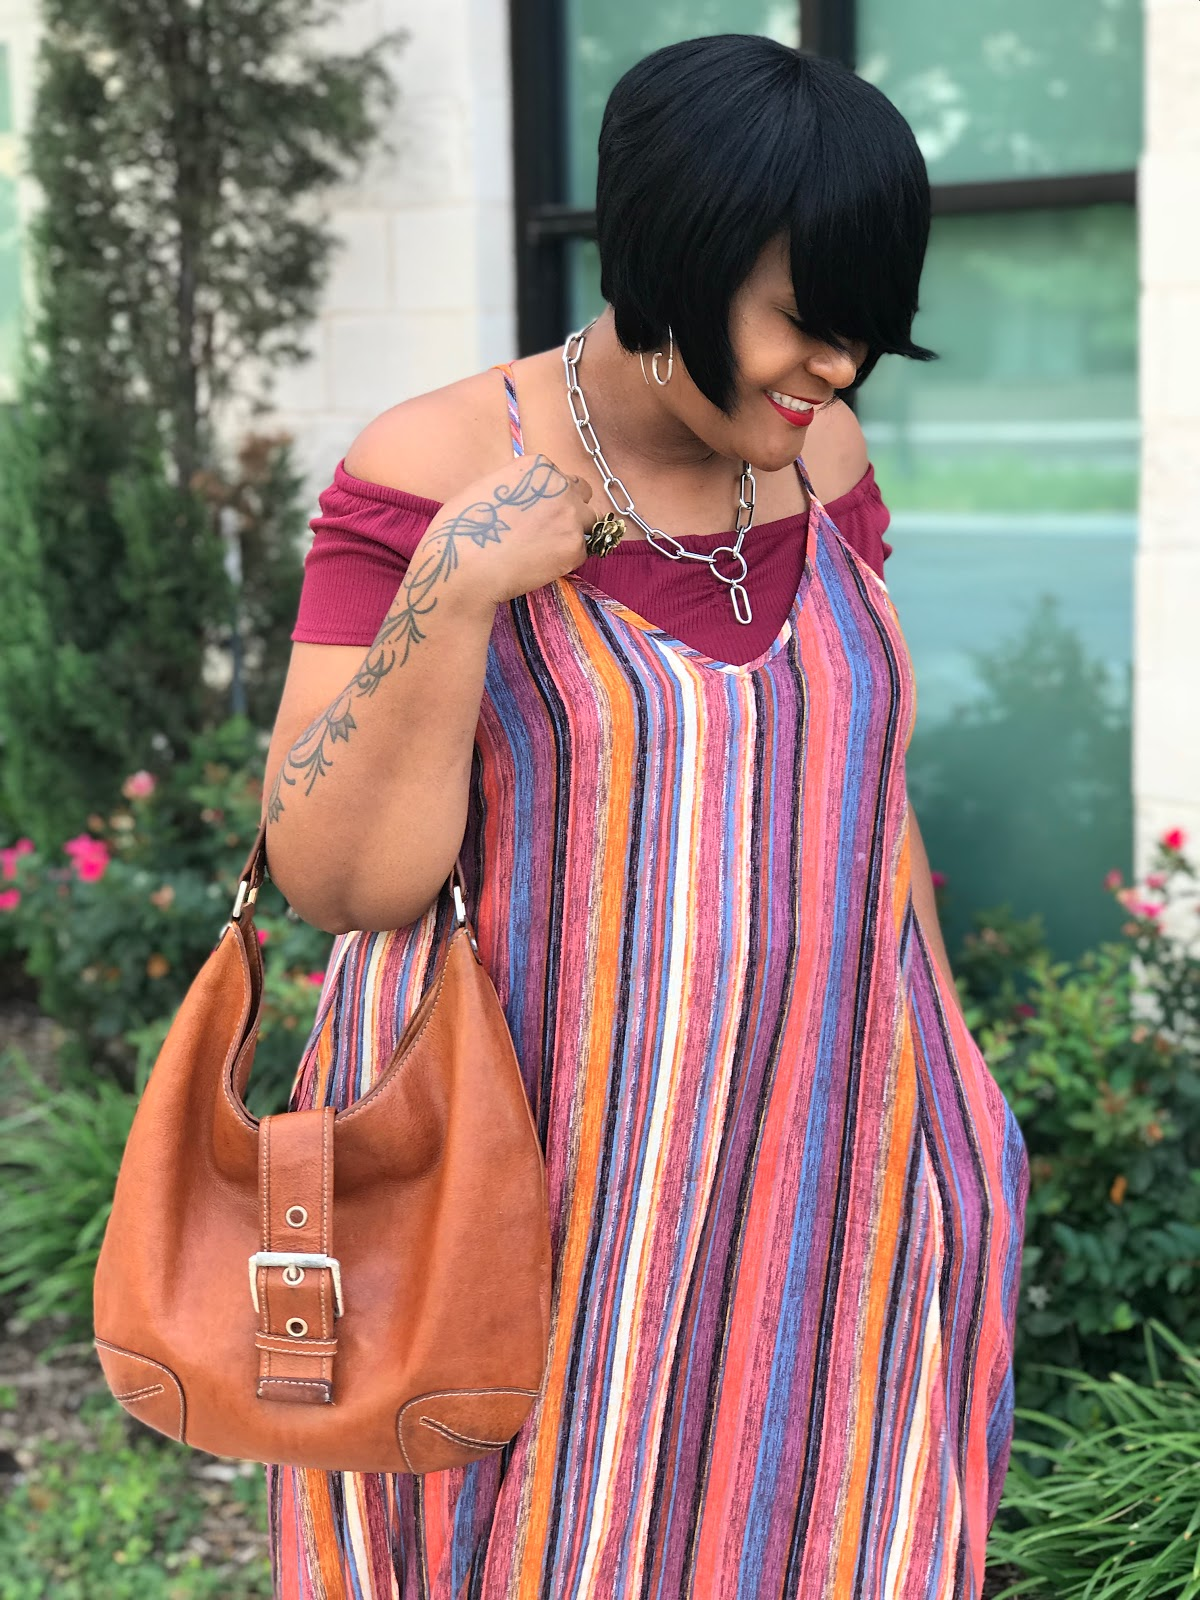 Image: Woman sharing how she mixes old clothes with new clothing and accessories